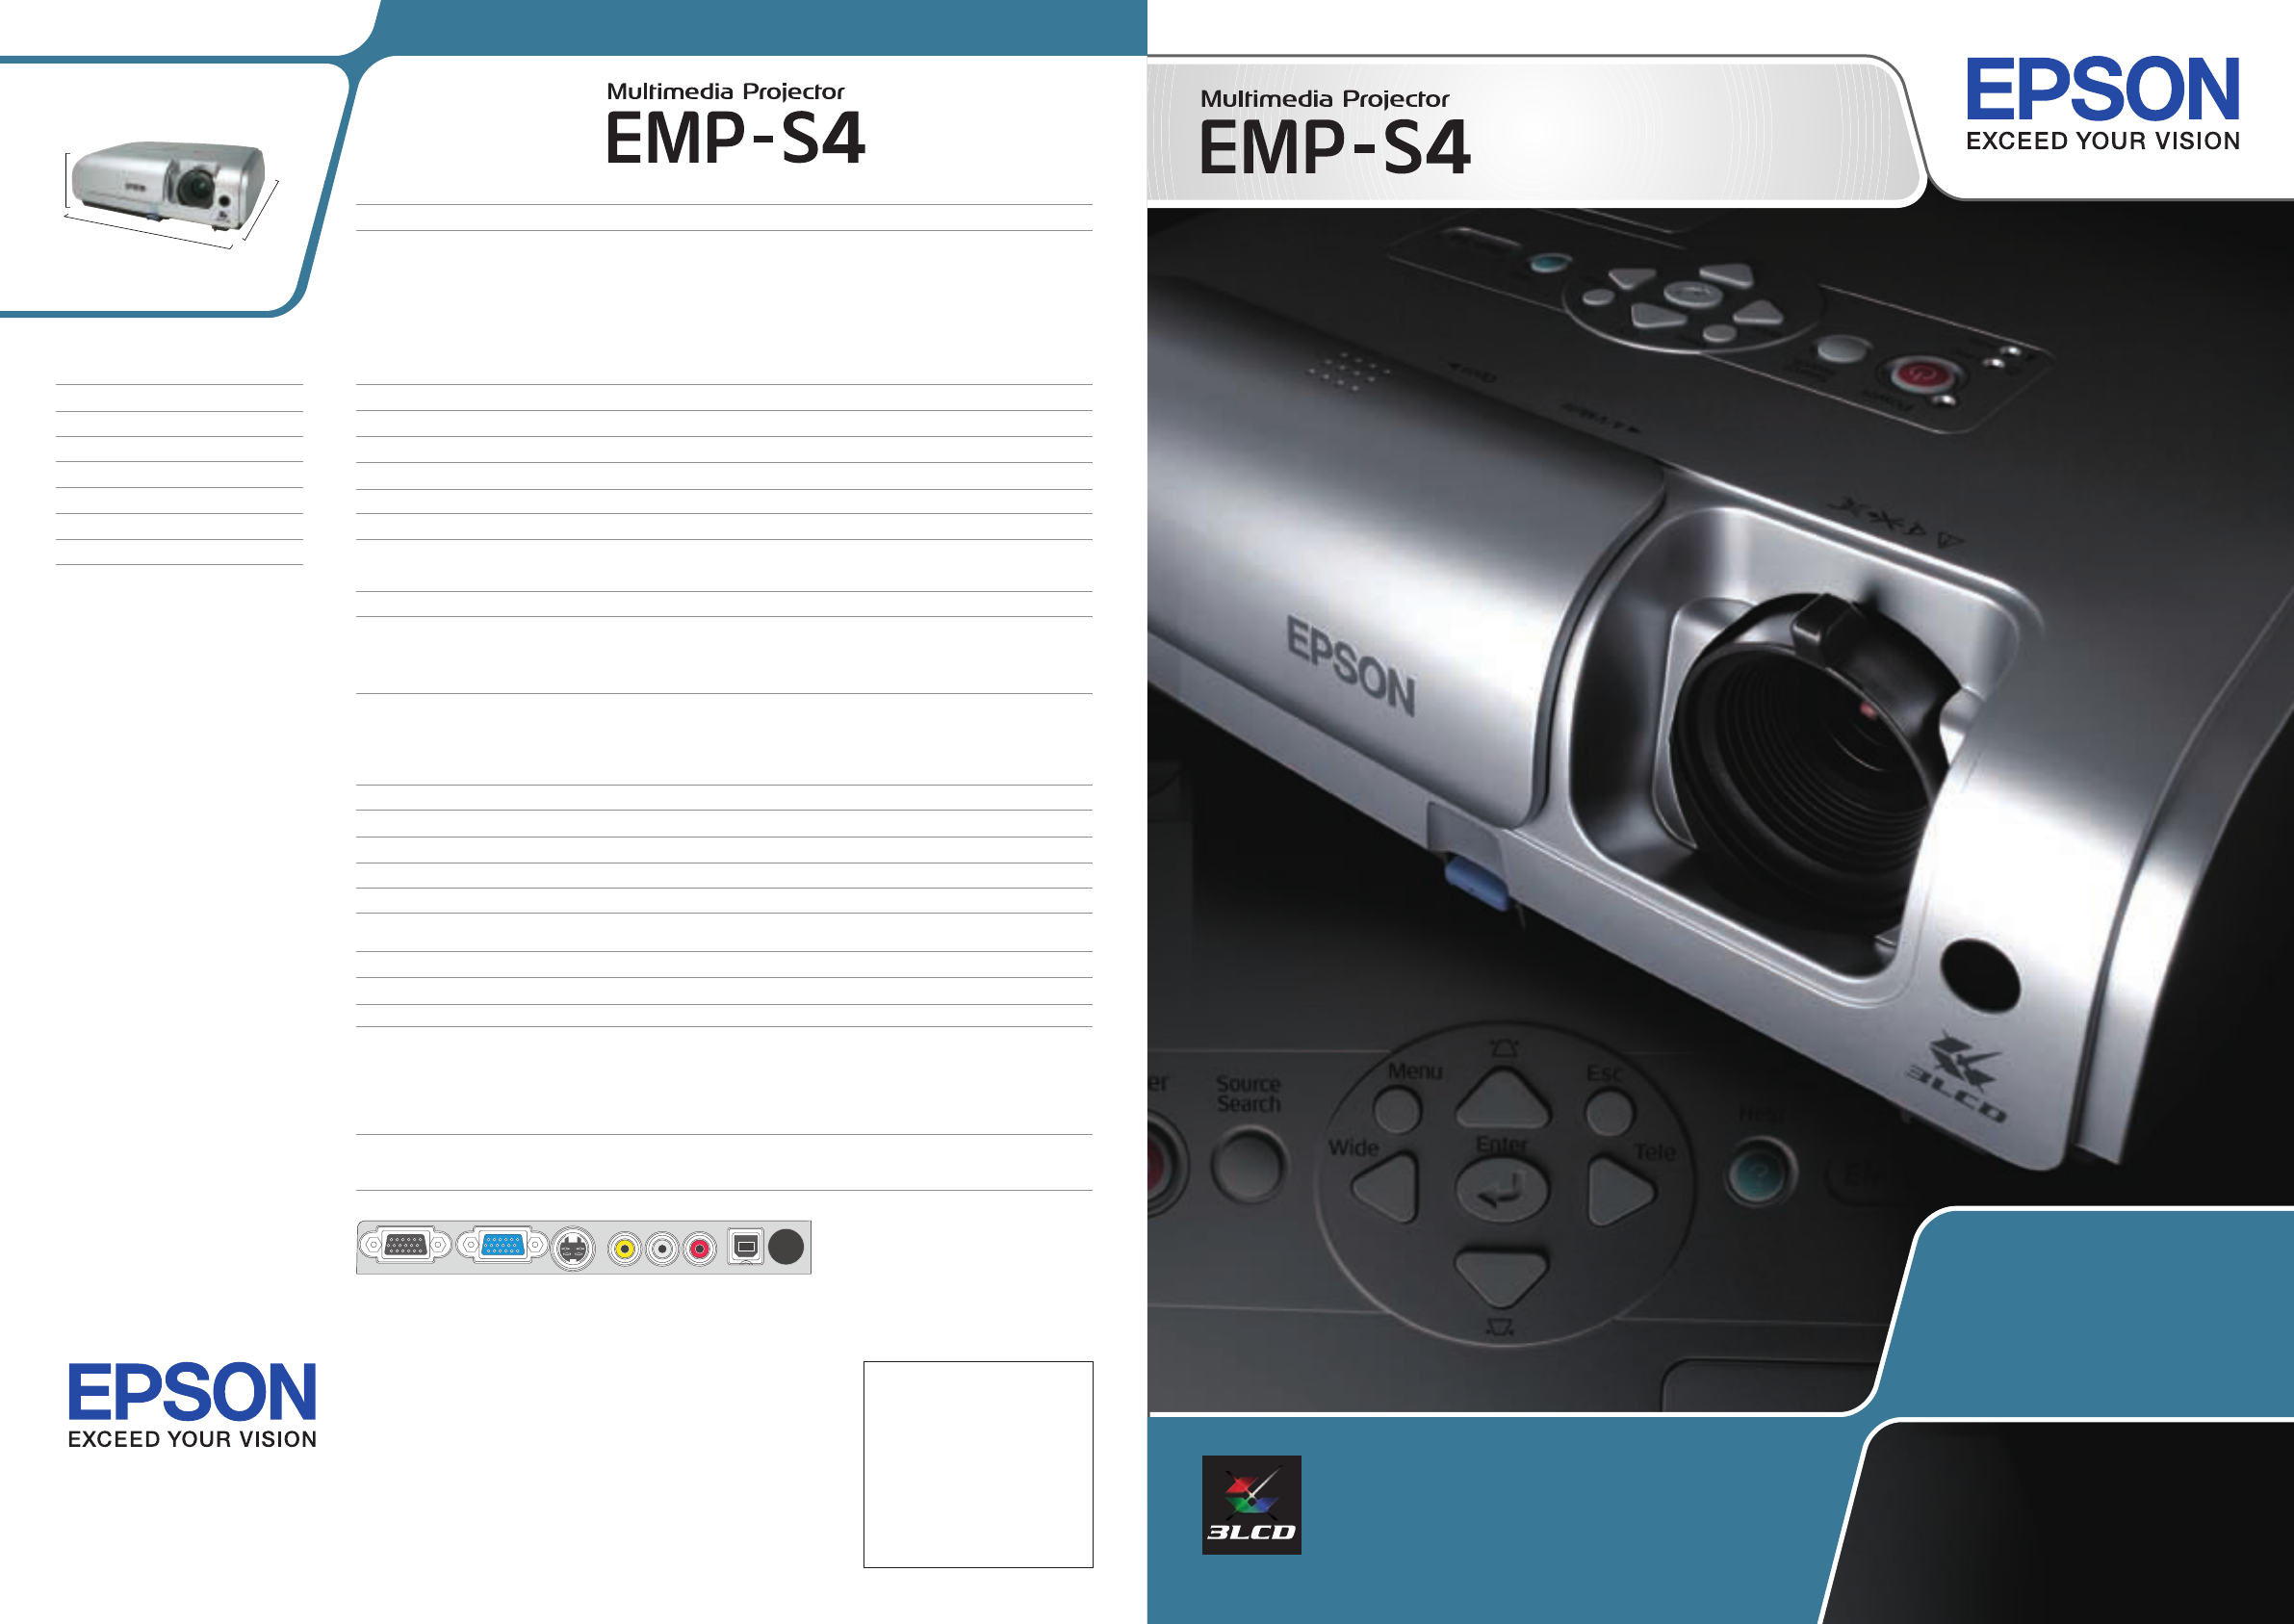 Epson EMP-S4 Projector User Manual